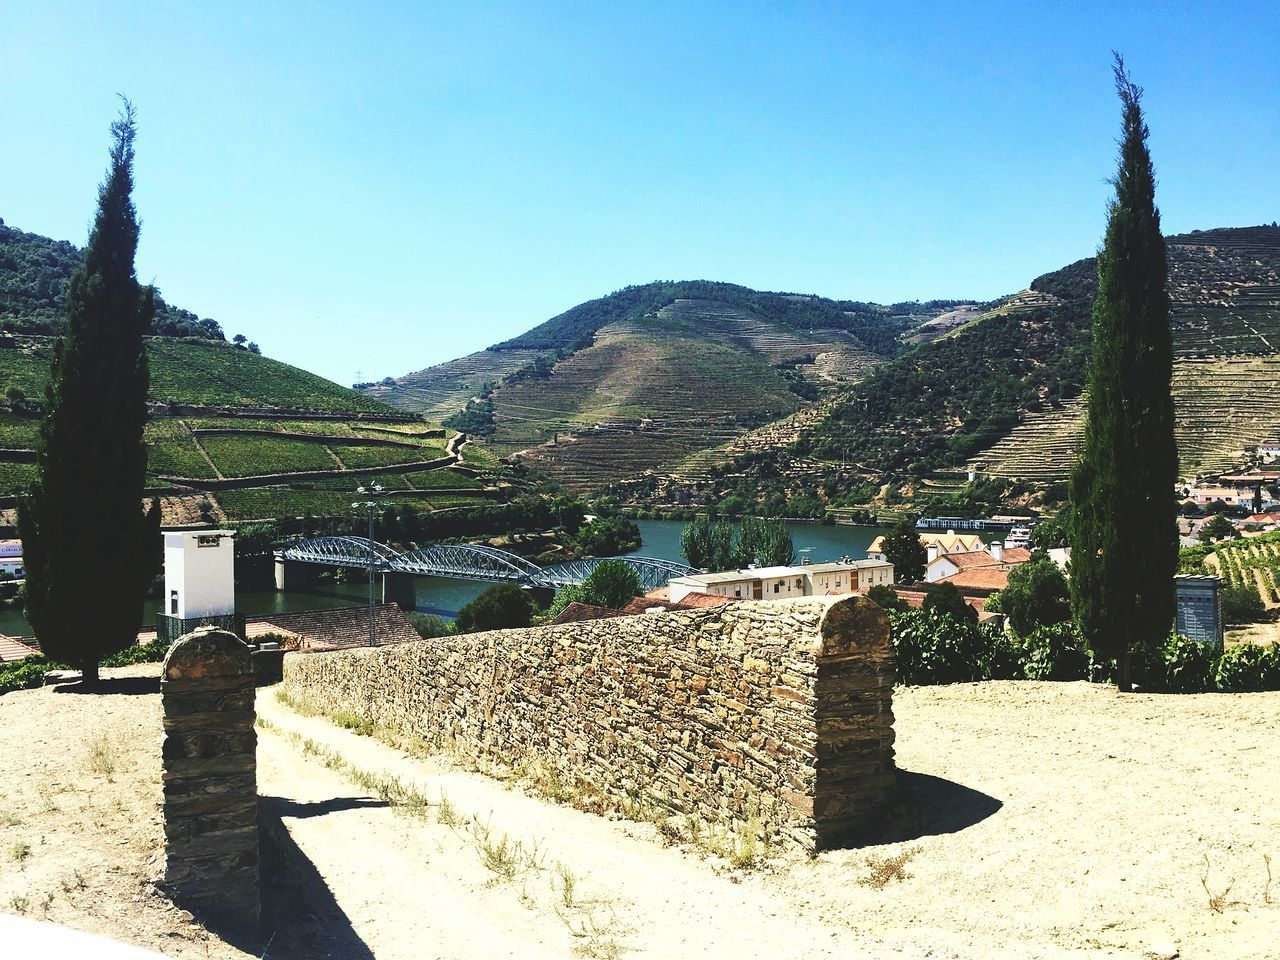 EyeEmNewHere Clear Sky Mountain Outdoors Sunlight Sky Day Nature Portugal Is Beautiful Portugal FirstEyeEmPic Douro  Douro River Portugal Dourovalley EyeEmNewHere